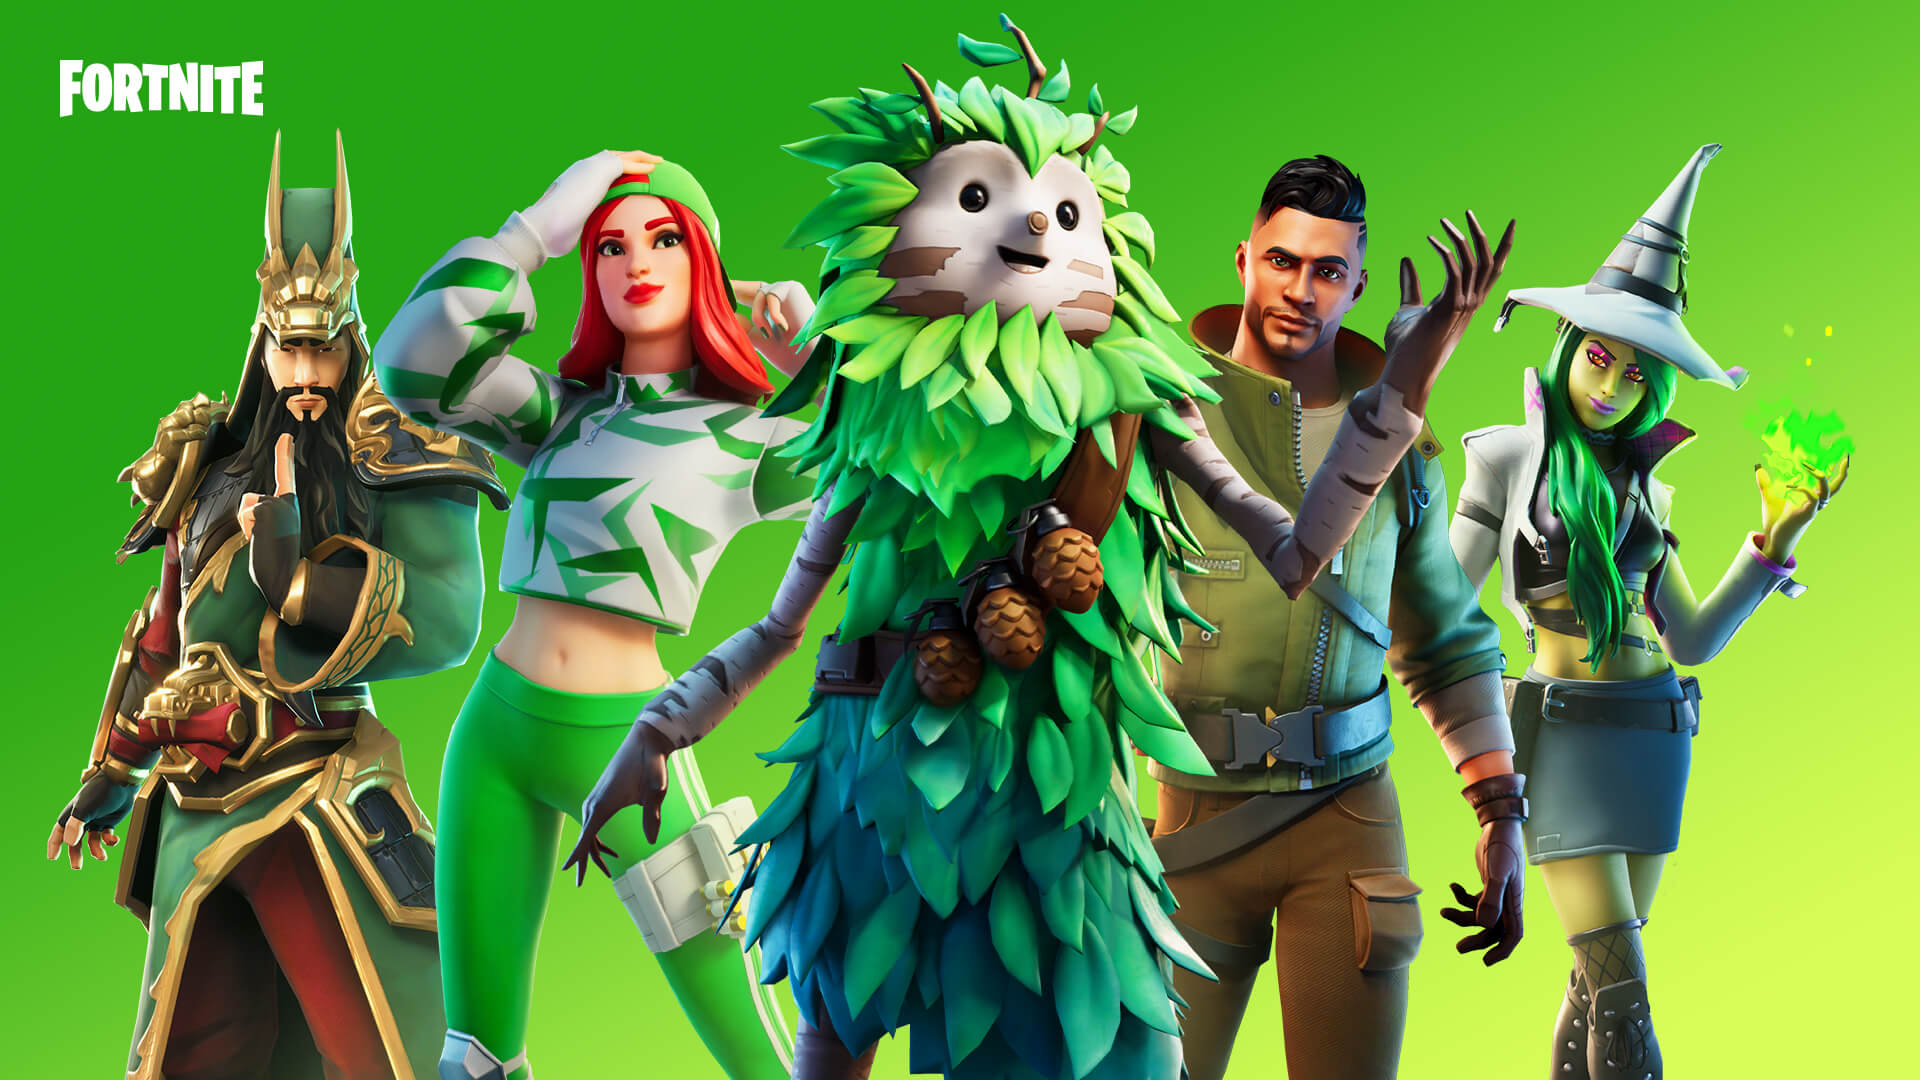 The Best Fortnite Creative Map Codes For The Week Of November 17 2020 The current fortnite season 3 map features a ton of exciting locations to explore, but some spots are better to drop into. best fortnite creative map codes for